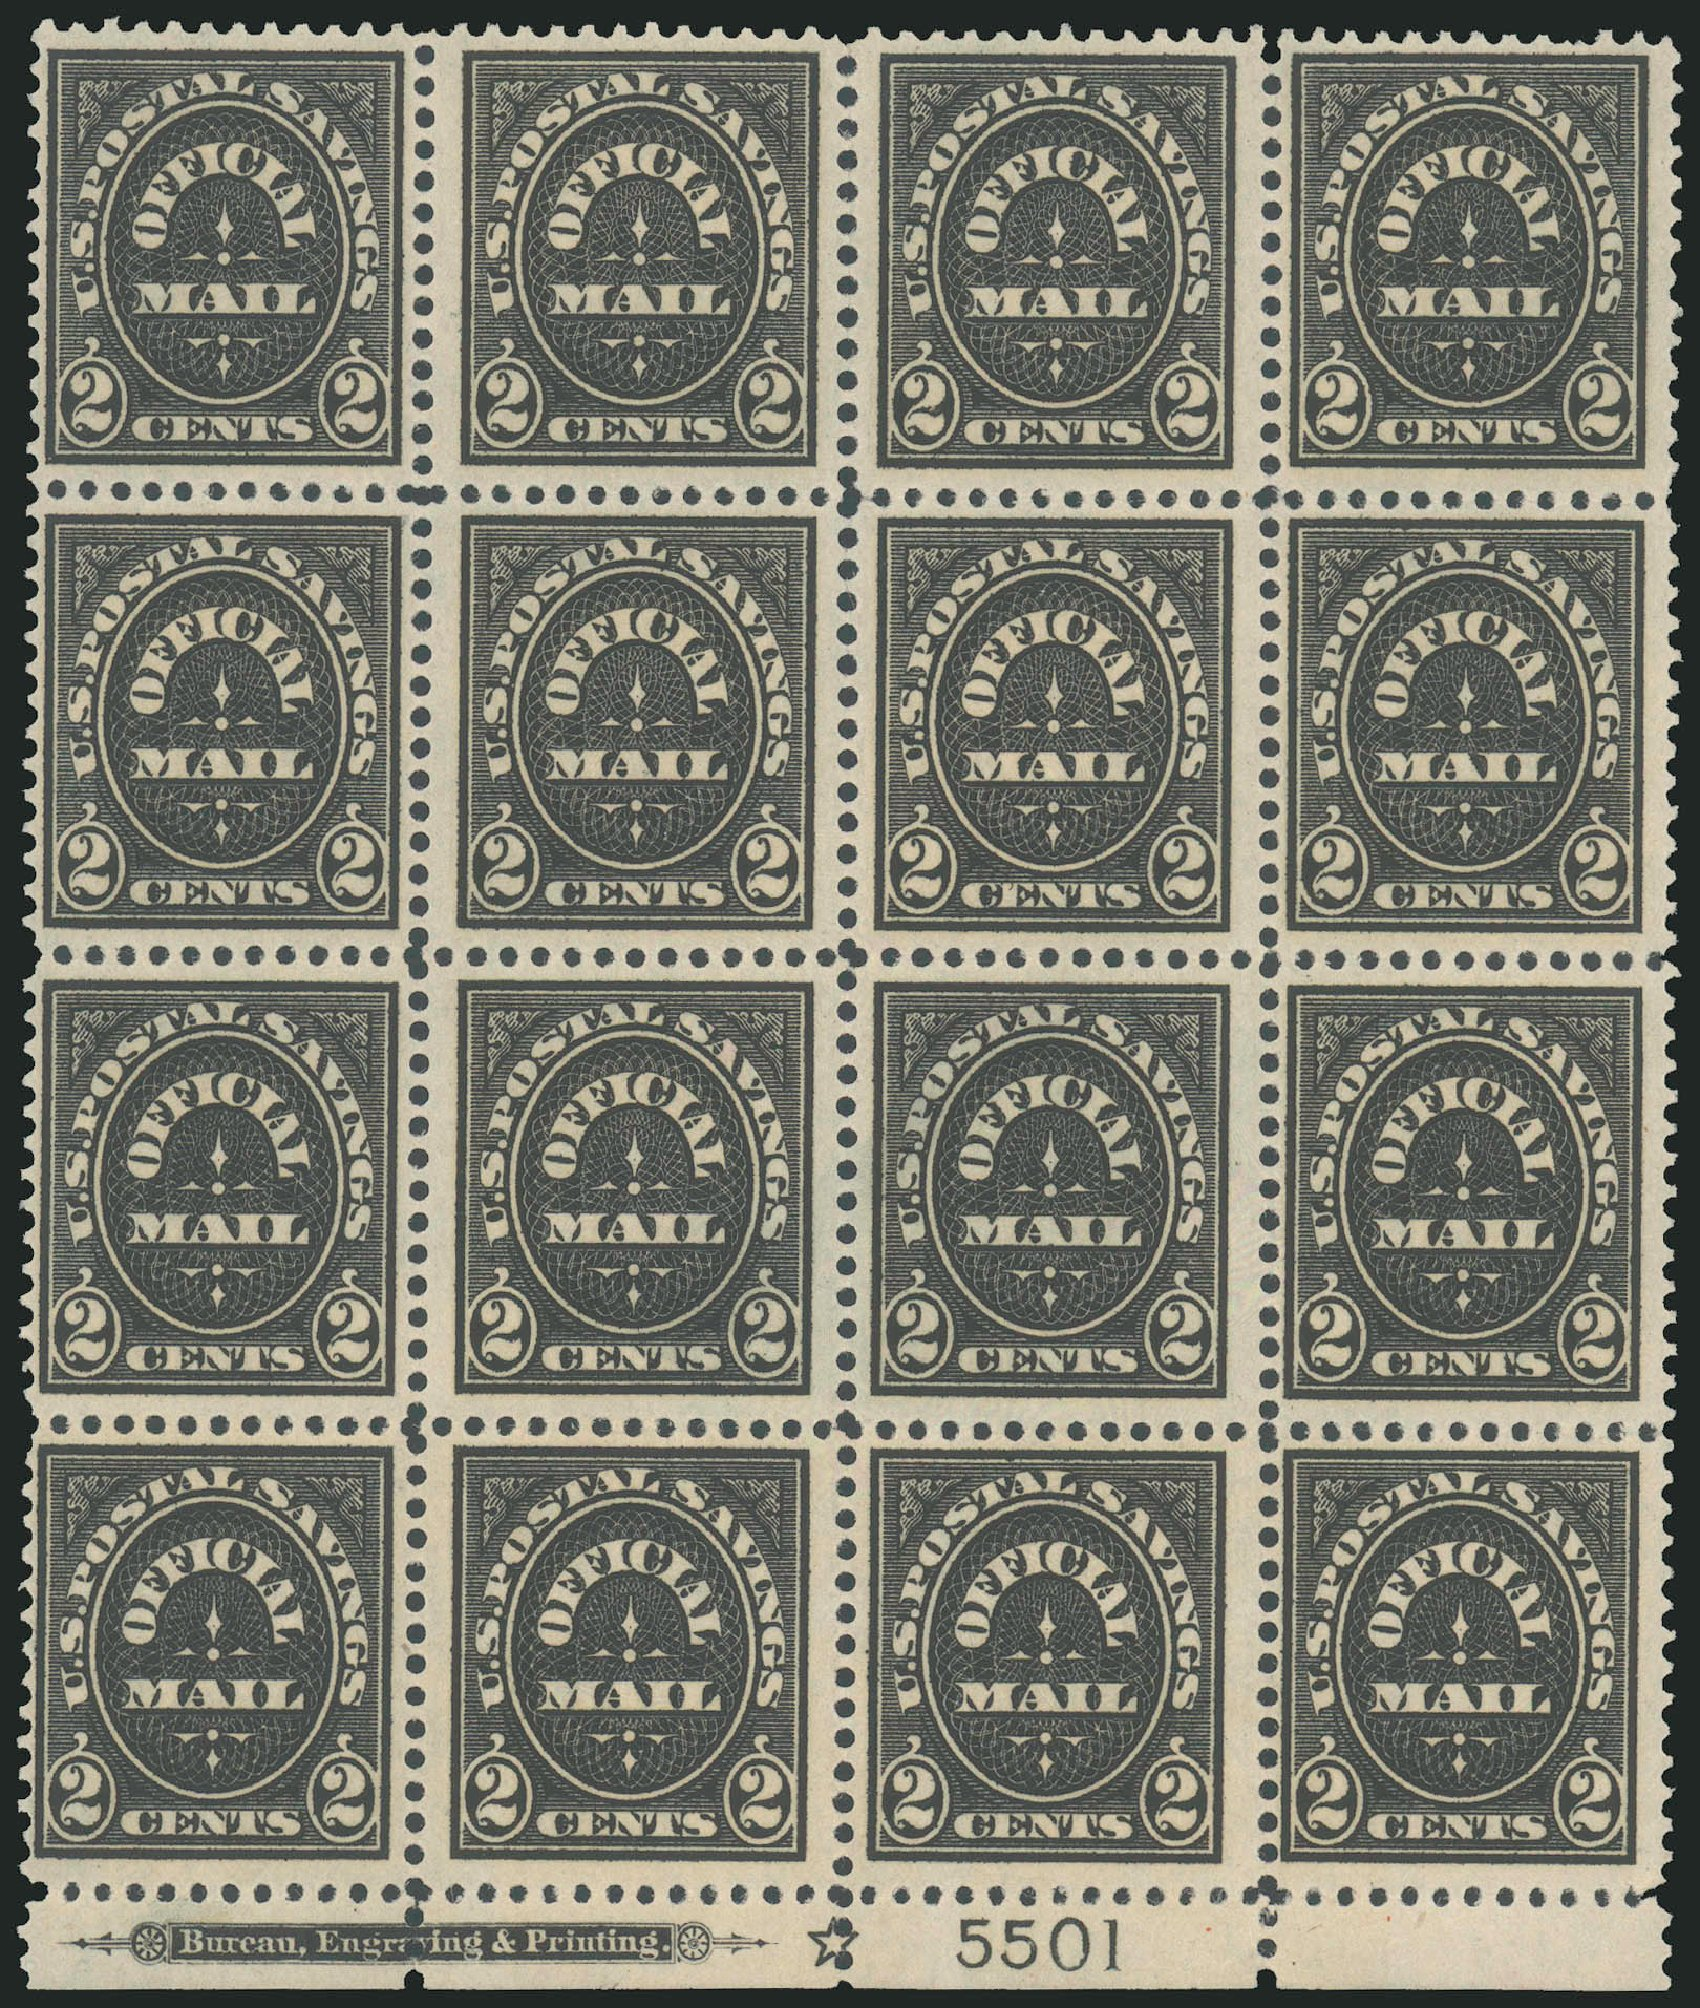 Costs of US Stamps Scott Cat. O121 - 1910 2c Postal Savings Official. Robert Siegel Auction Galleries, Jun 2010, Sale 991, Lot 1473